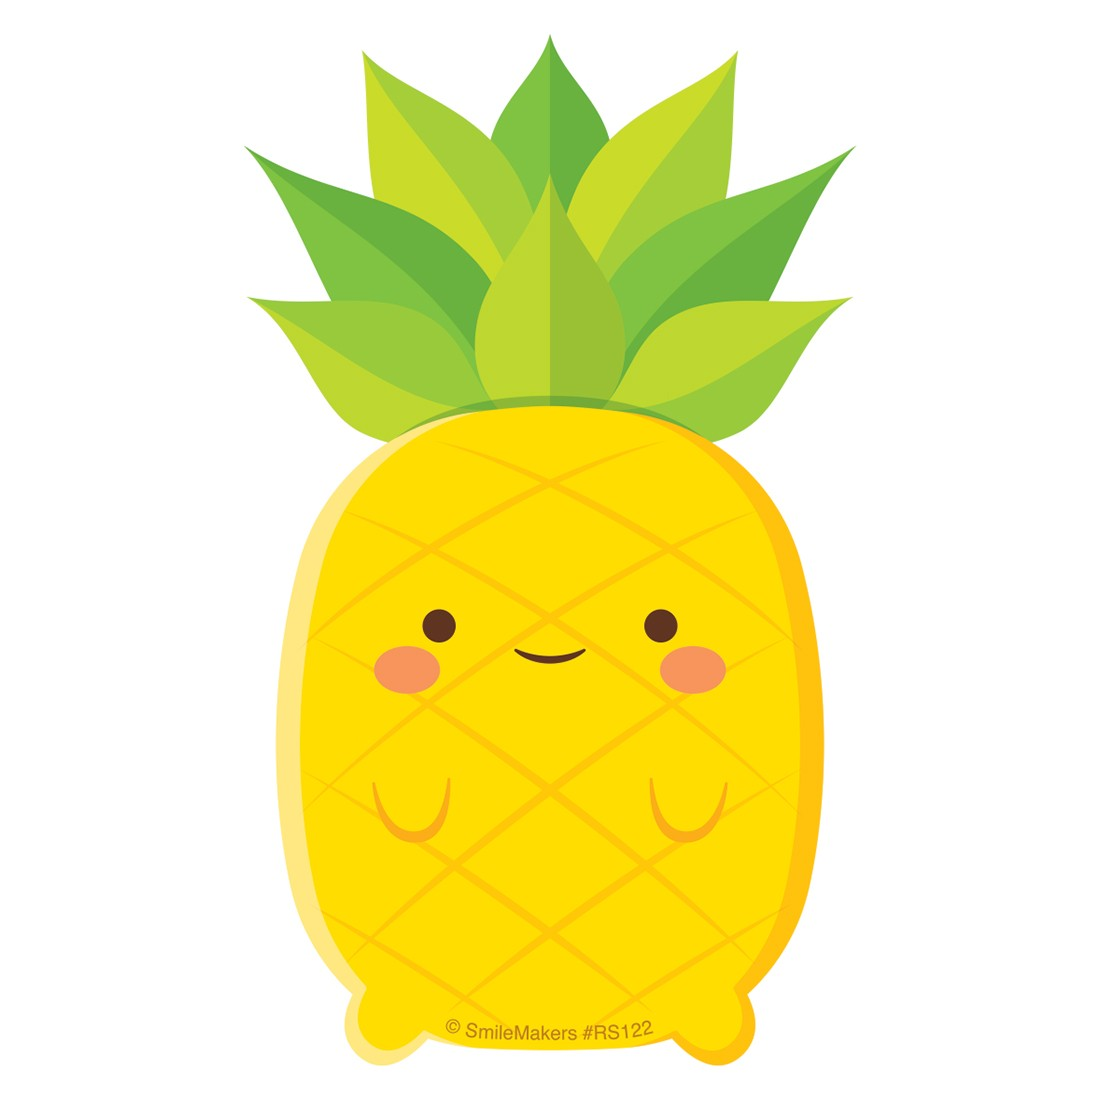 Pineapple Re-Stickable Stickers  [image]